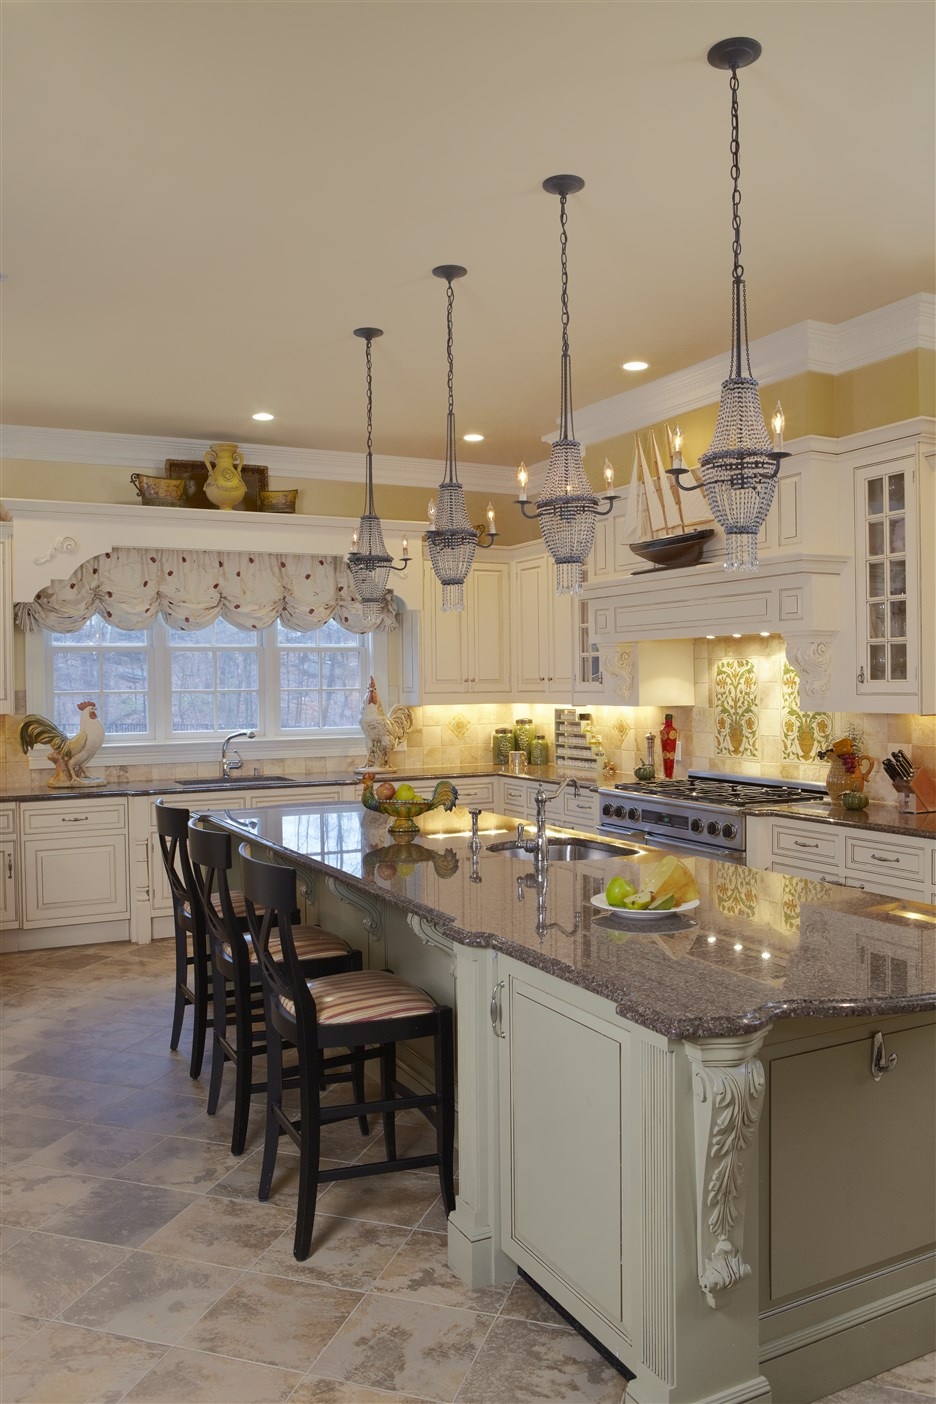 Modern style kitchen with island sink and faucet